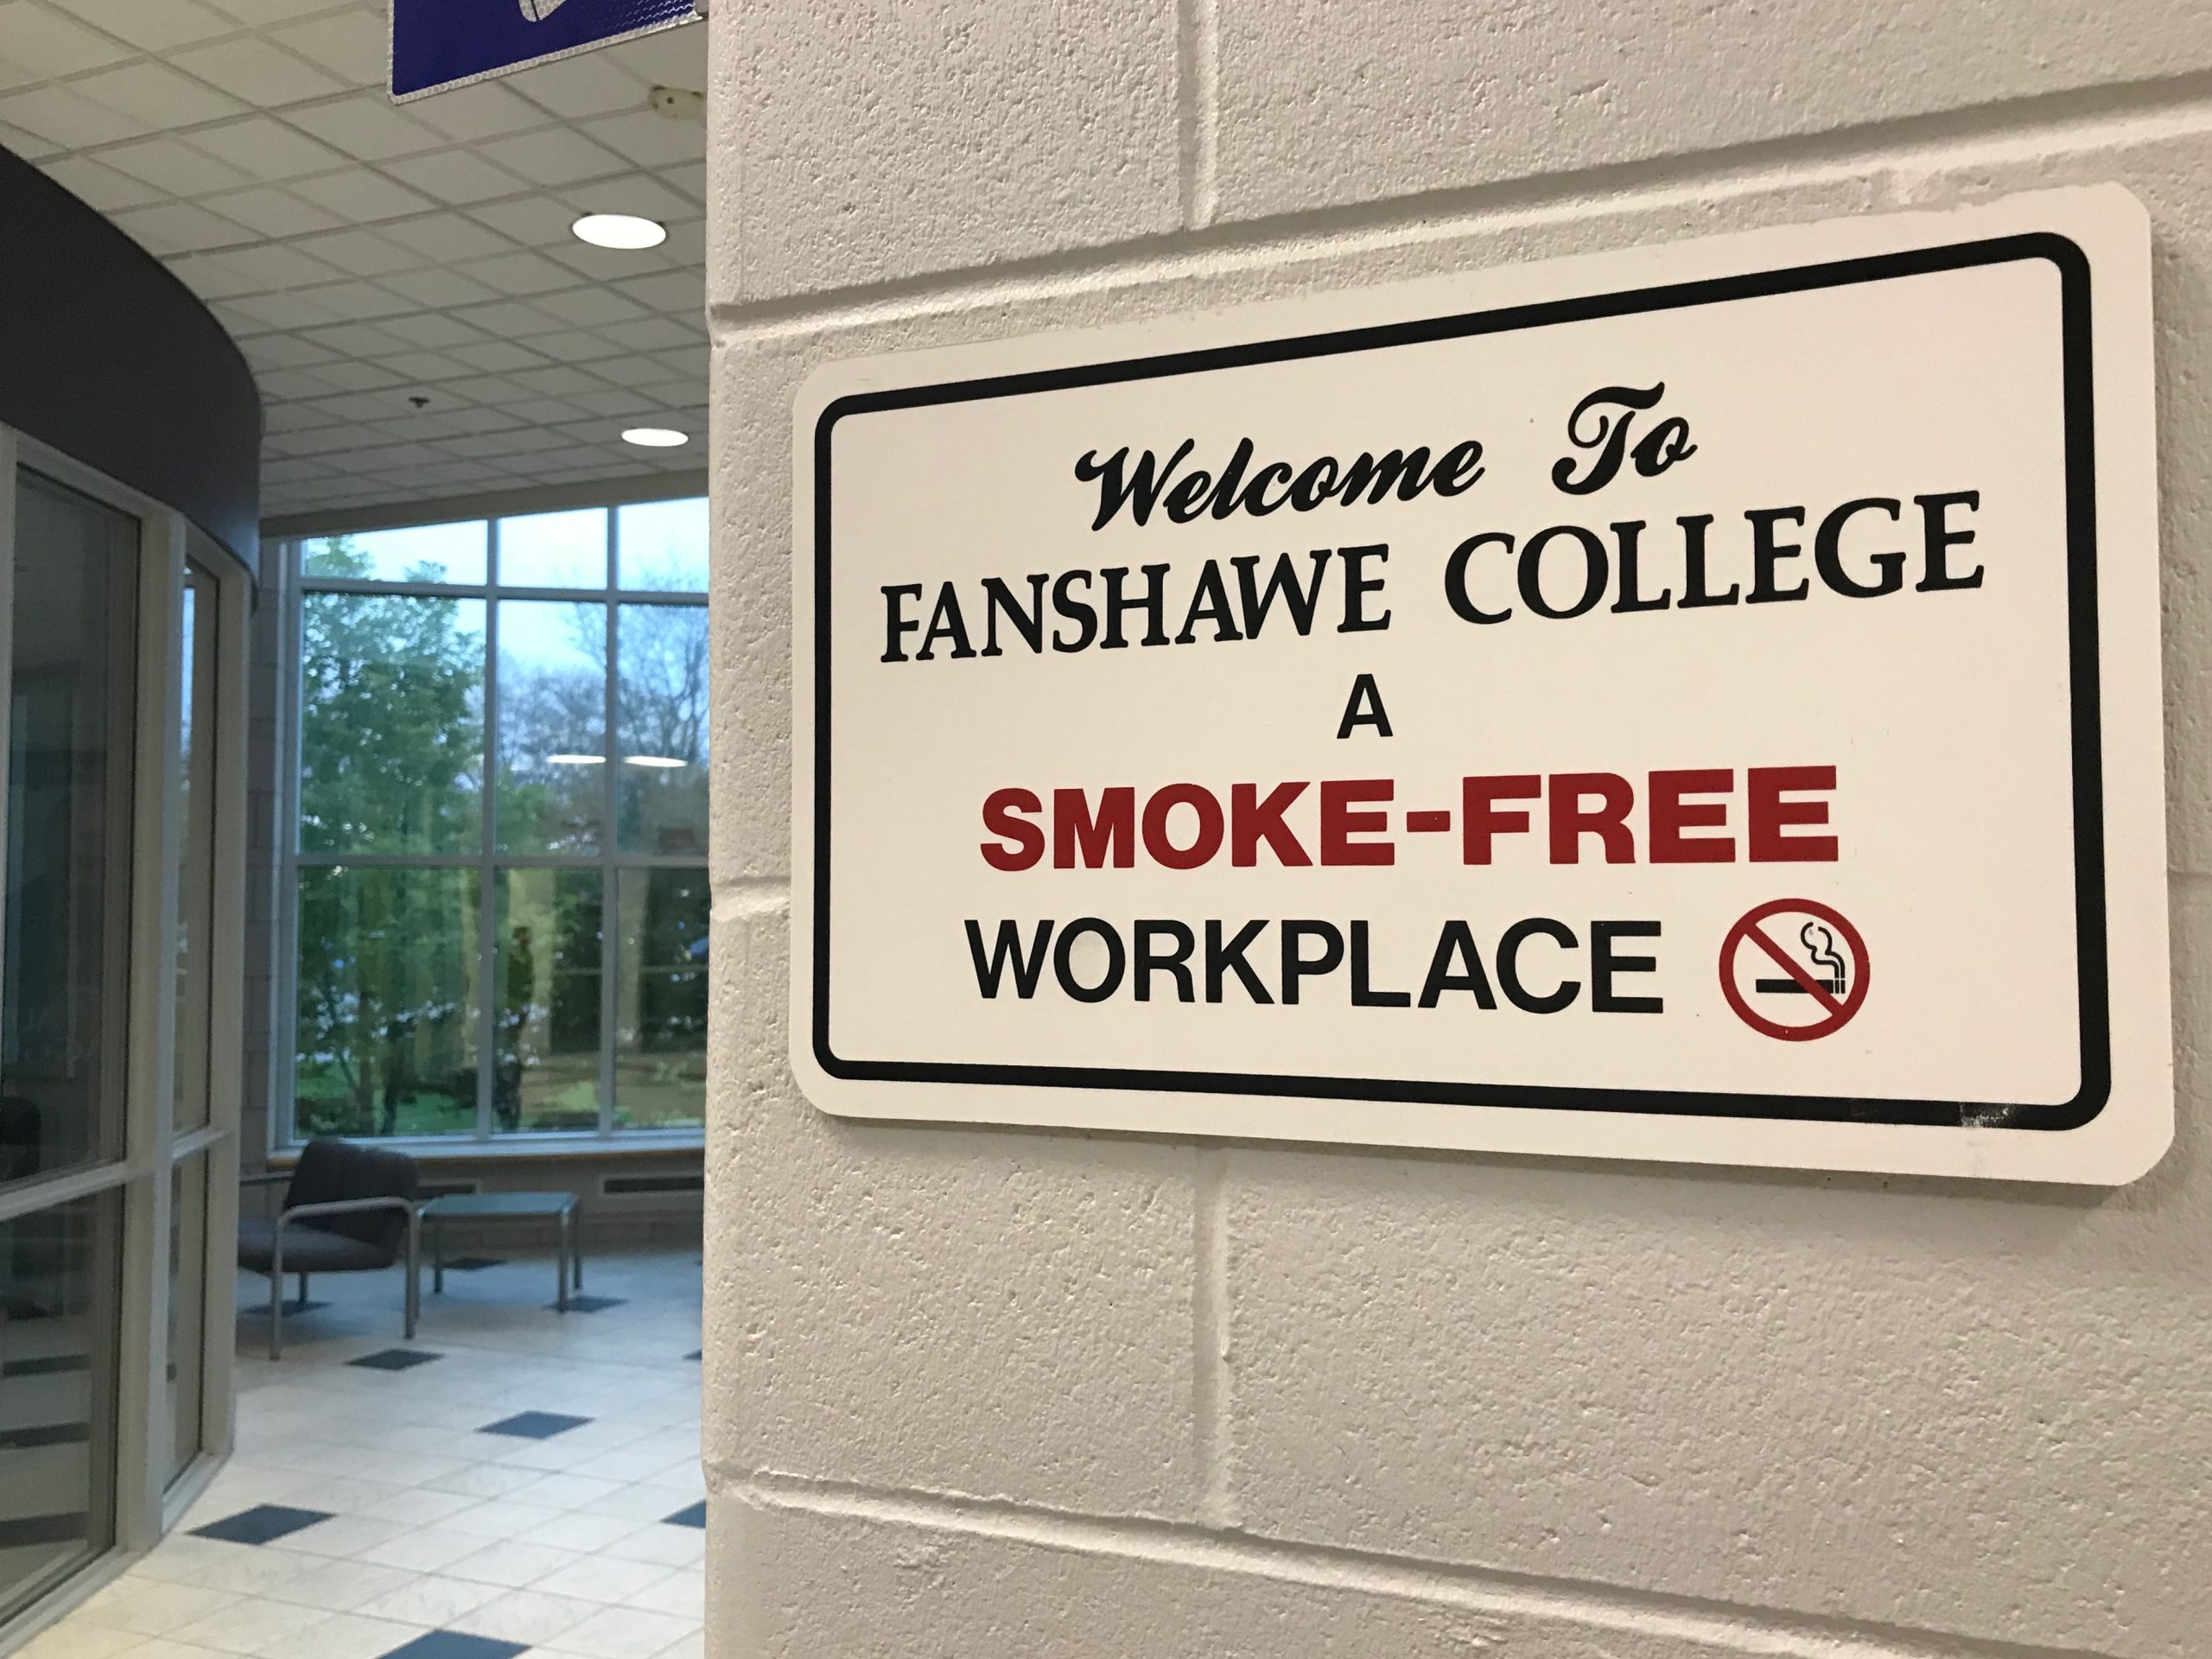 New smoke-free policy to be imposed on Fanshawe College campus could help smokers quit easier